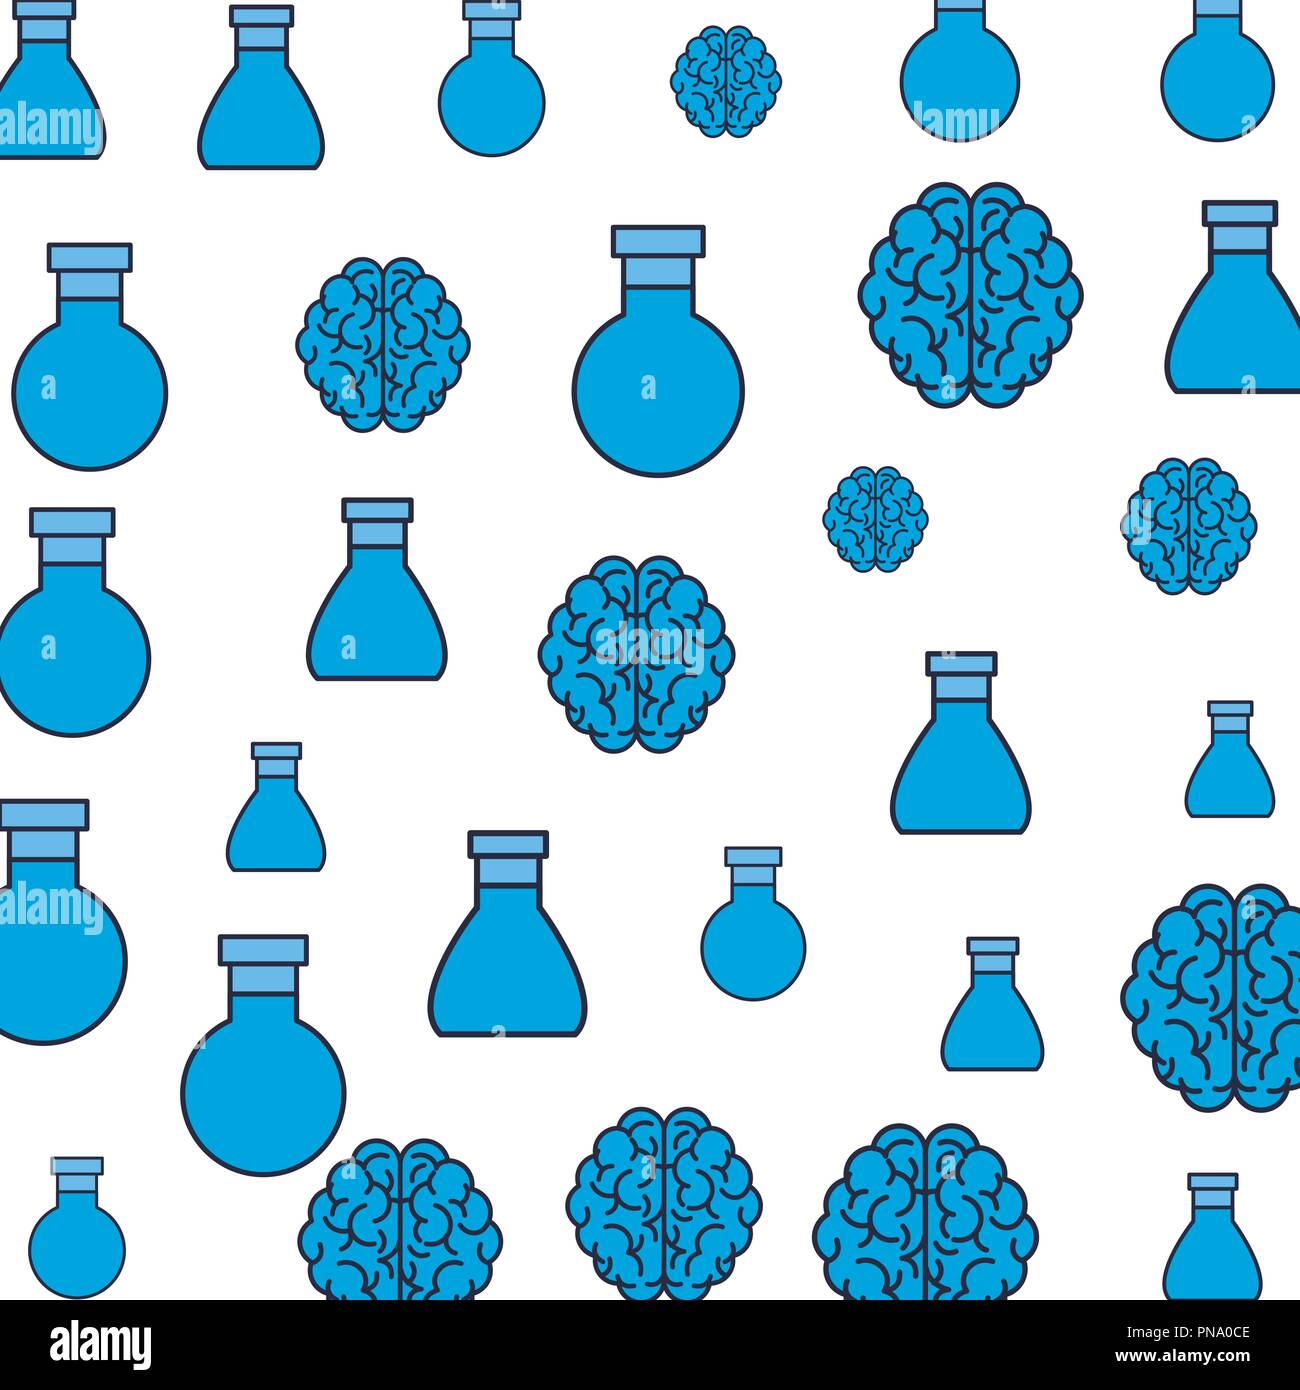 Flask and brains pattern background - Stock Image